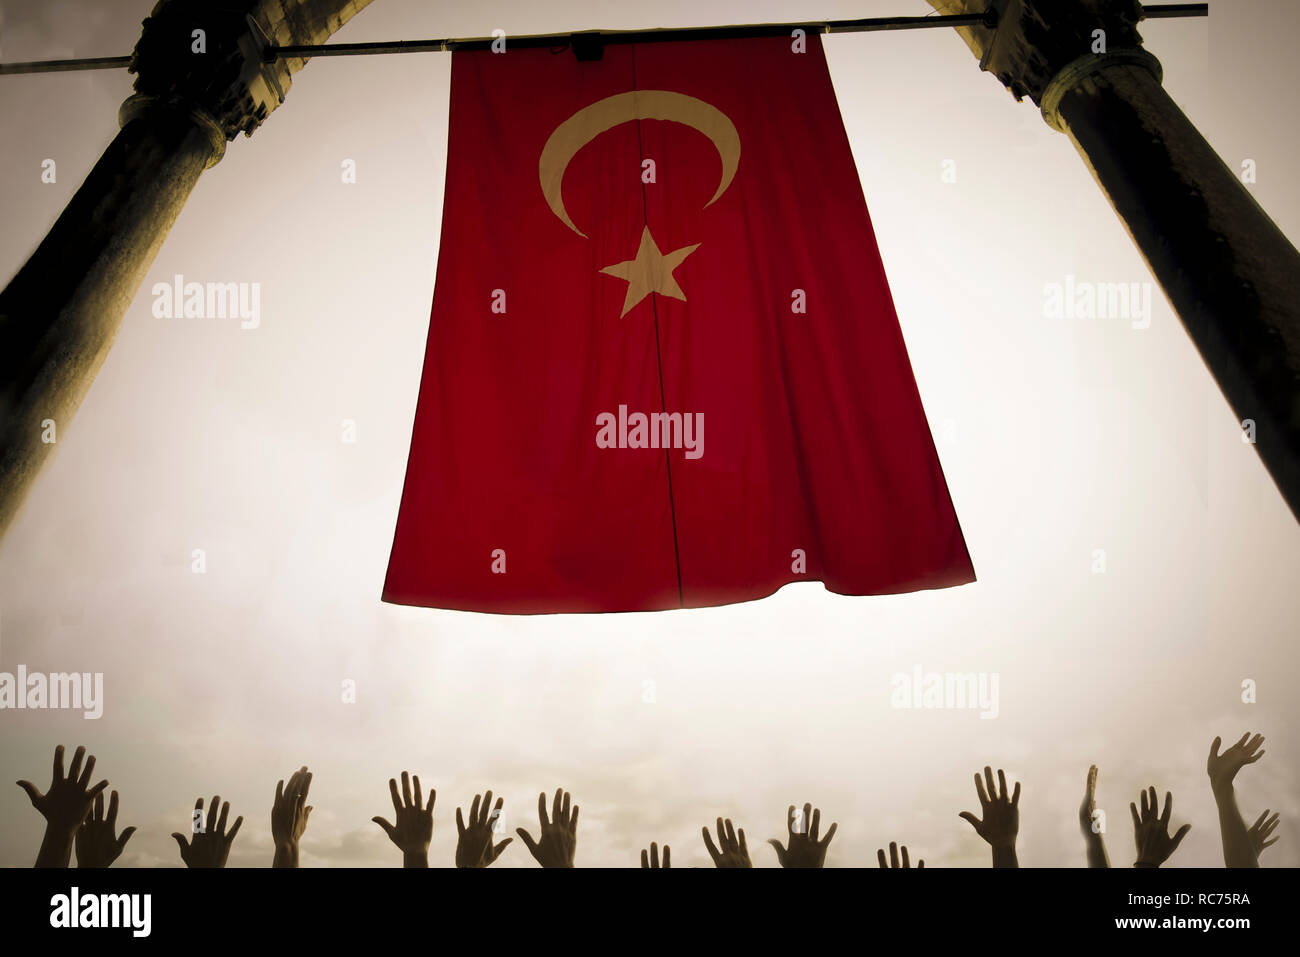 Politics and religion concept with red flag against the sky and lot of hands like prayer or crown concept - muslim and christian culture with war and  - Stock Image